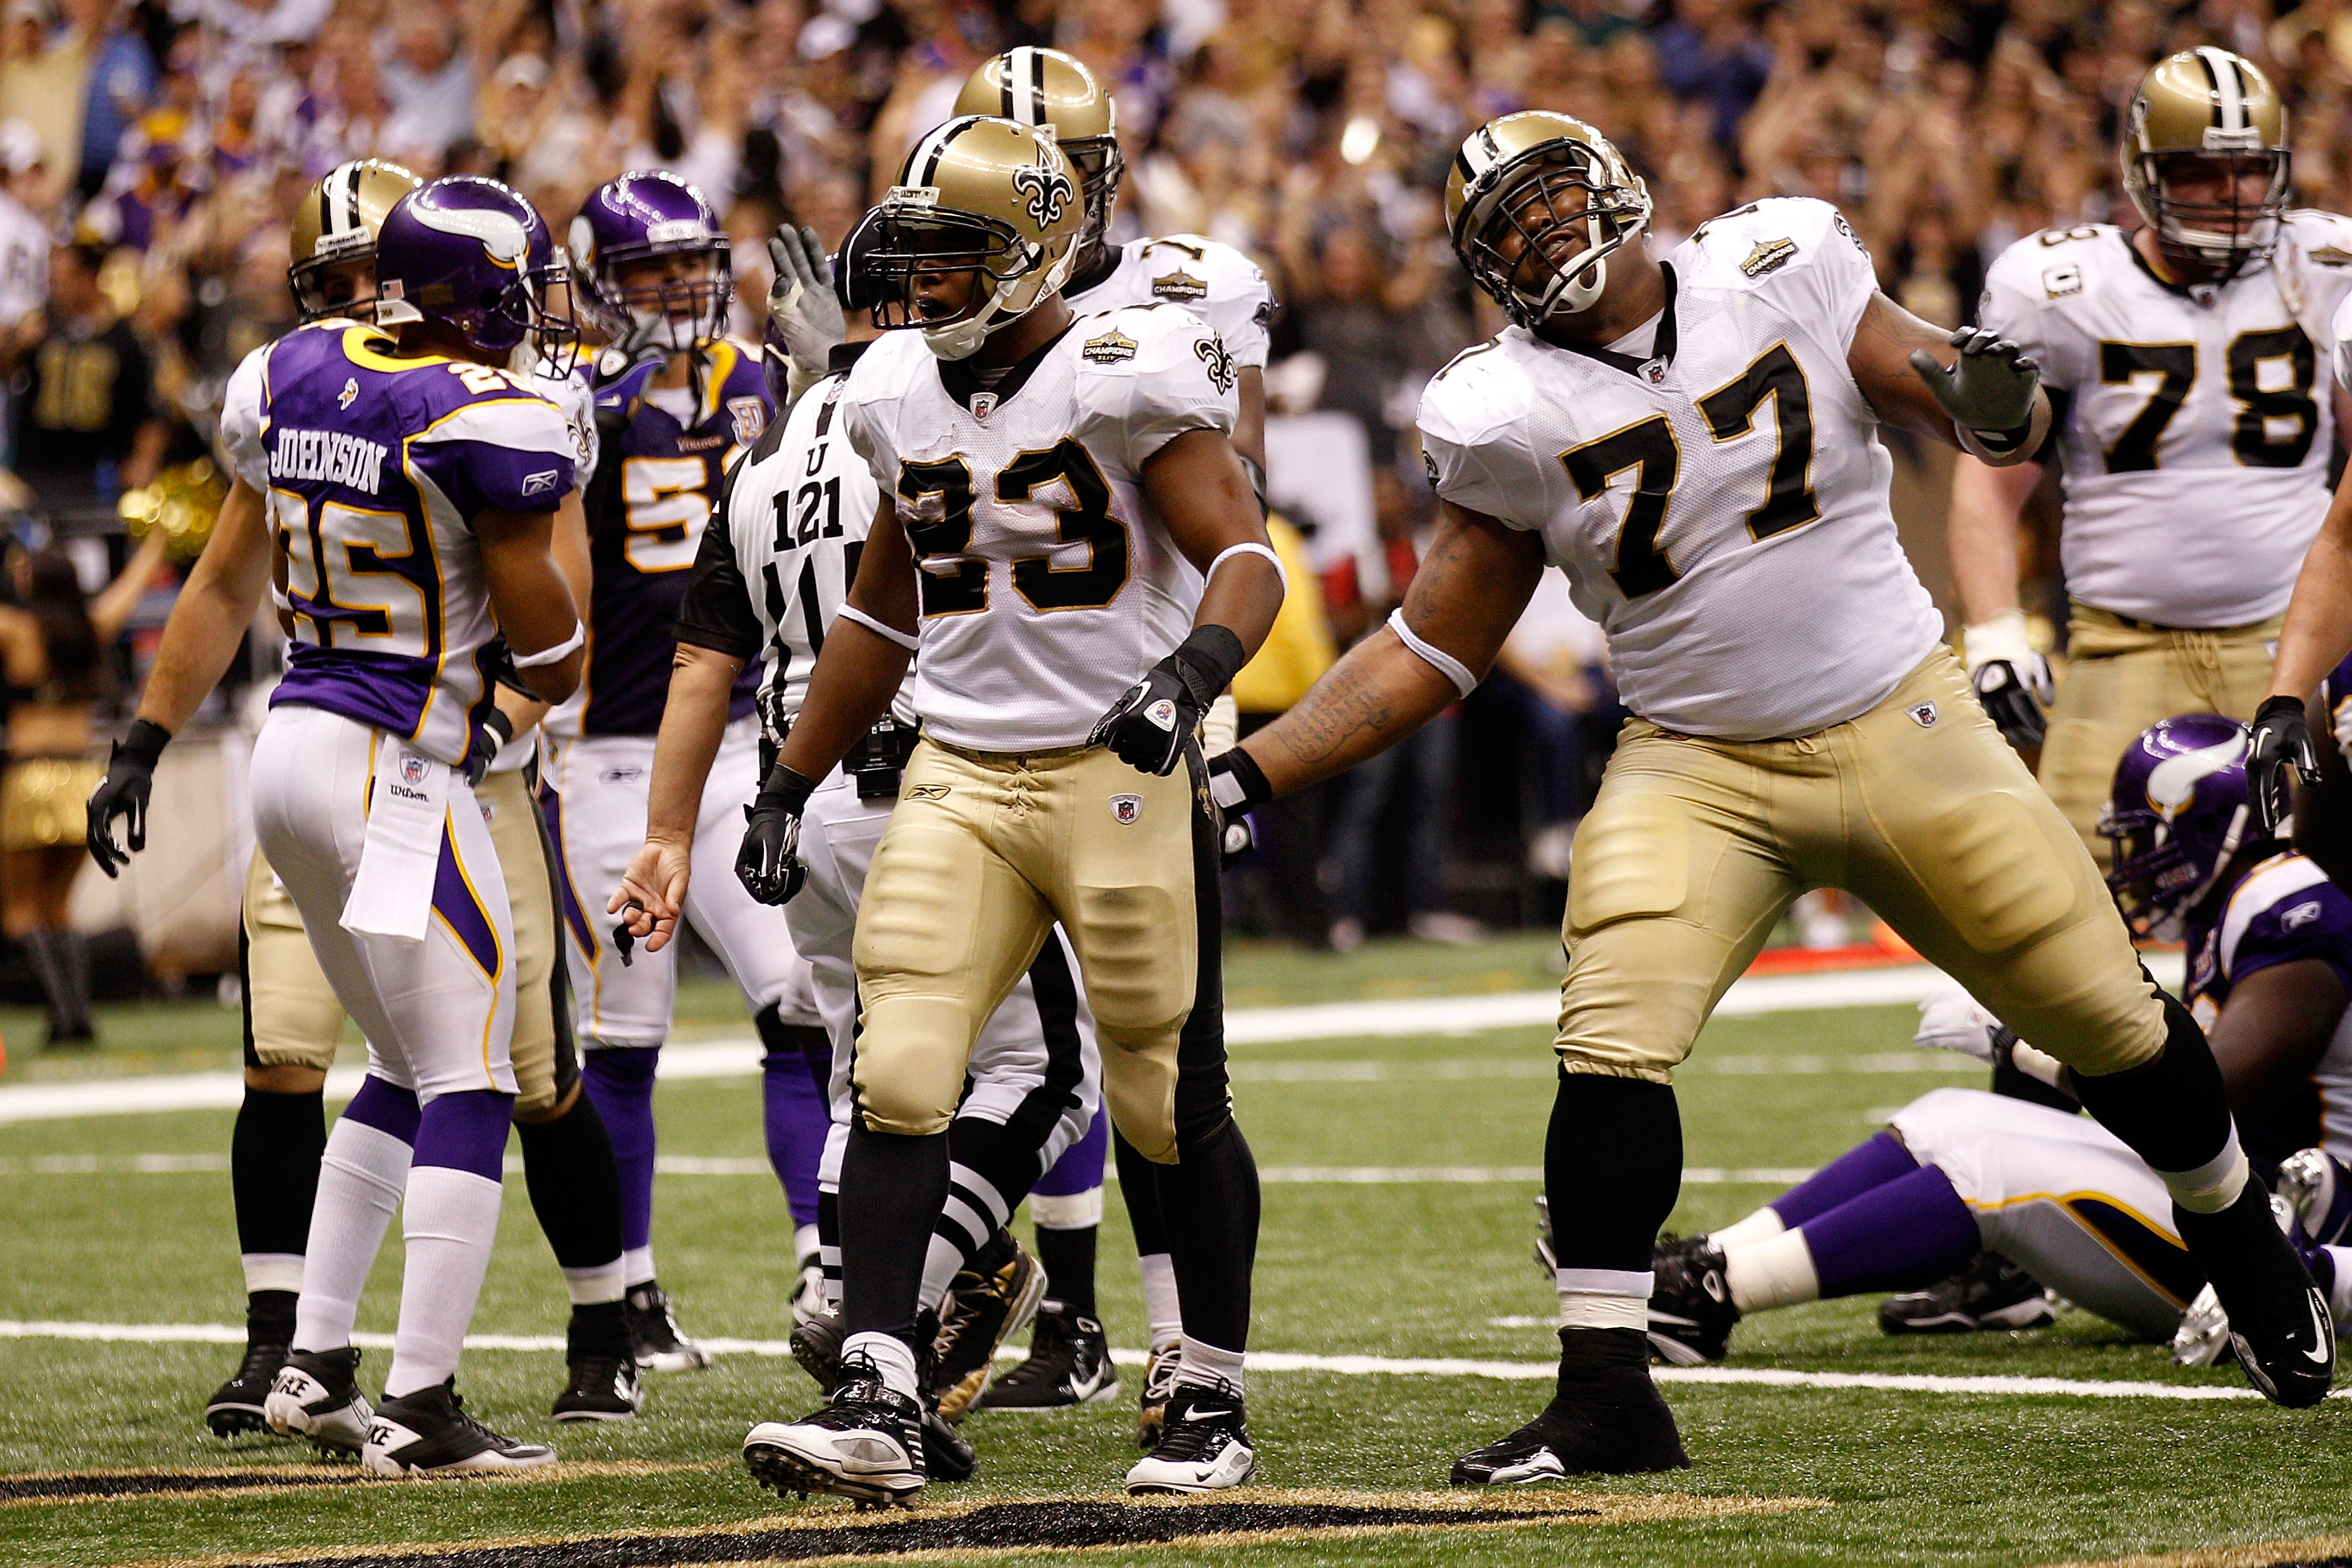 NEW ORLEANS - SEPTEMBER 09:  Pierre Thomas #23 and Carl Nicks #77 of the New Orleans Saints celebrate after Thomas scored a 1-yard rushing touchdown in the third quarter against the Minnesota Vikings at Louisiana Superdome on September 9, 2010 in New Orle